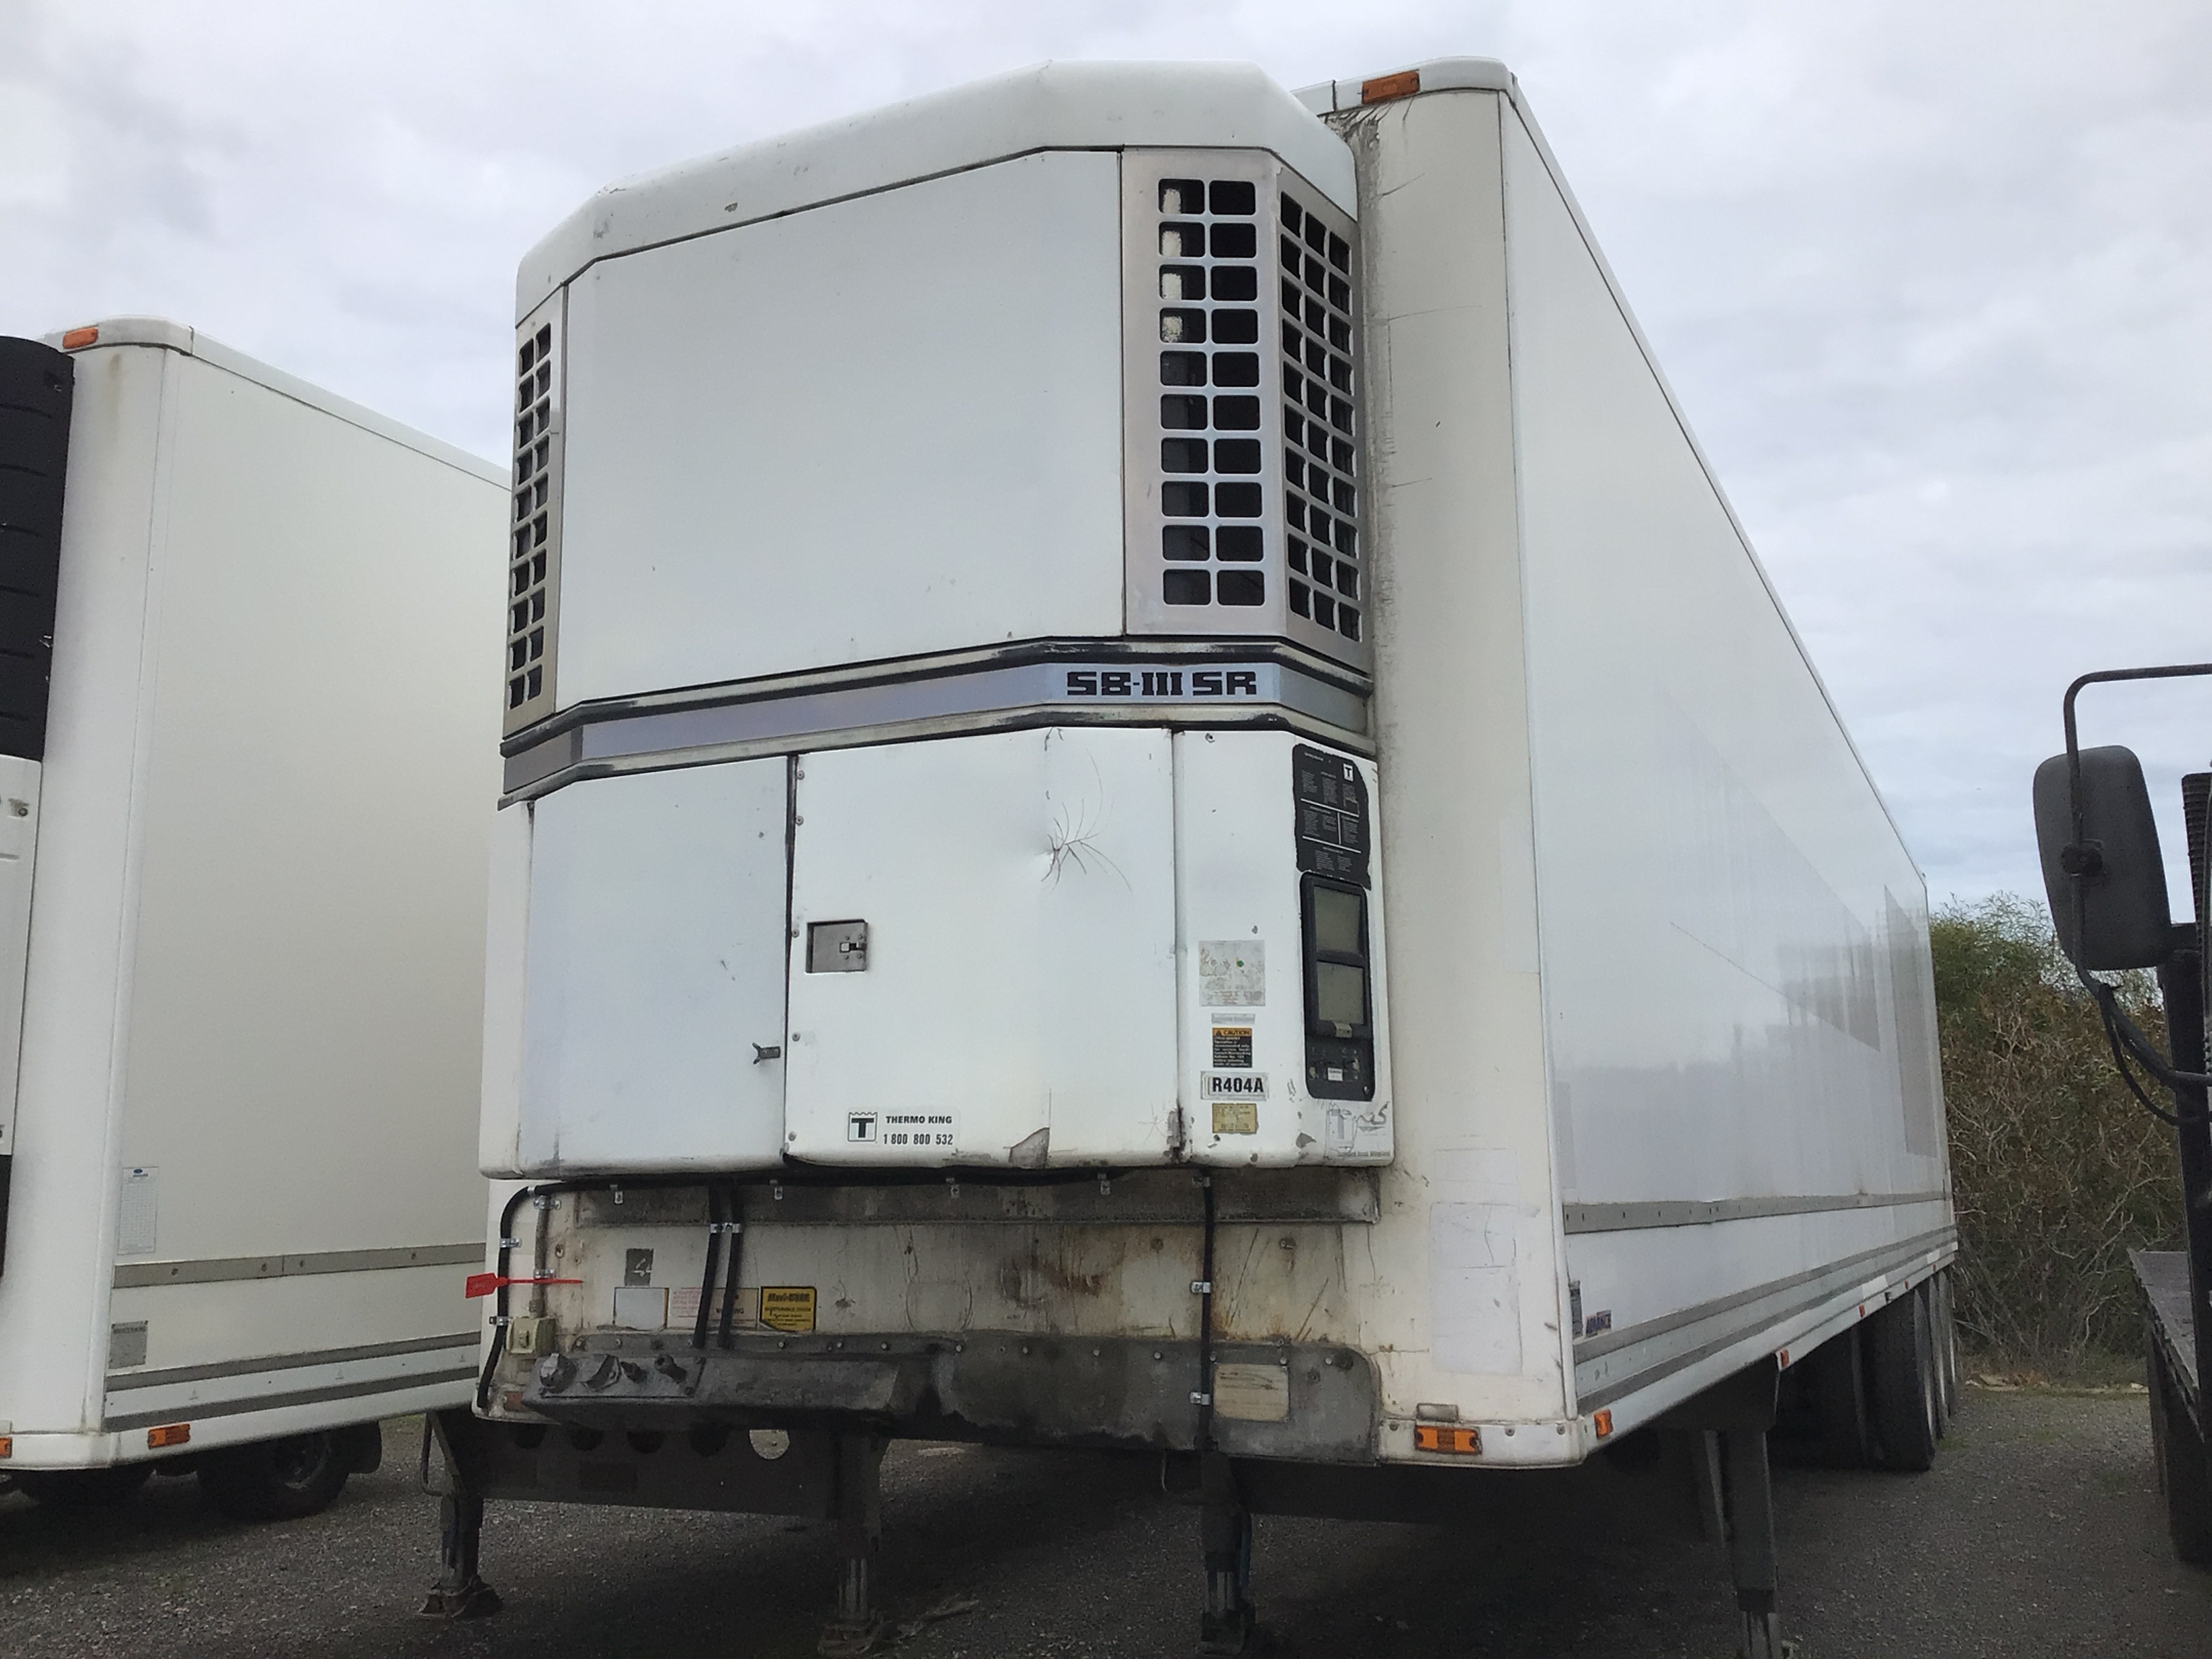 2006 Maxitrans ST3 (44Ft) Refrigerated Trailer